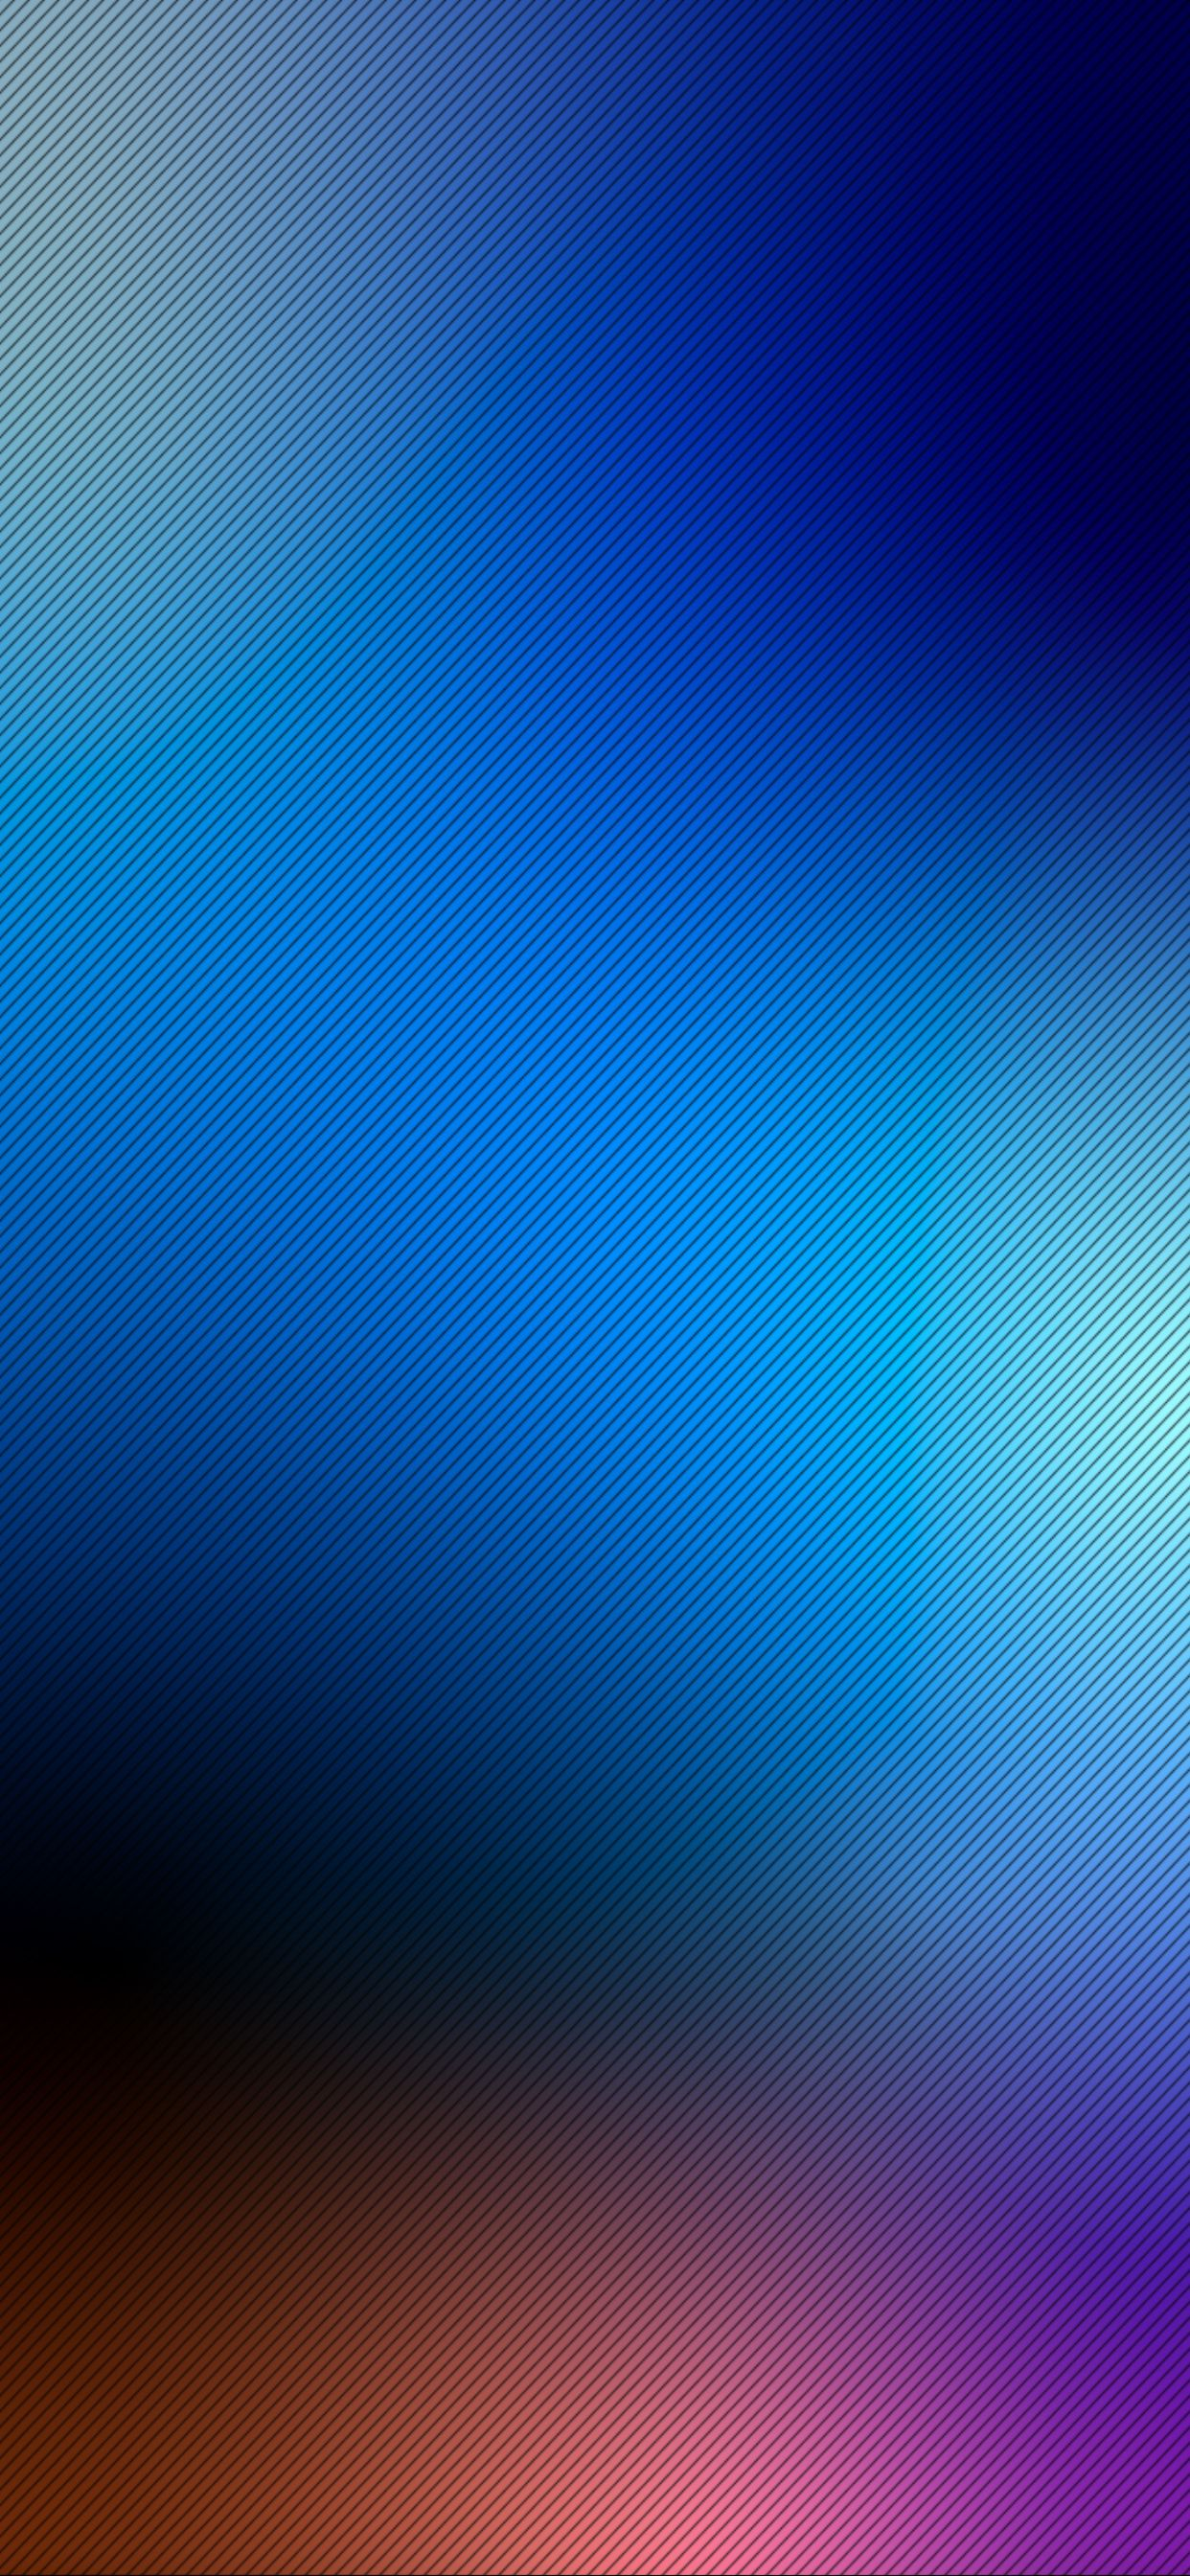 Gradient Grid By Hk3ton On Twitter Old Iphone Wallpapers Iphone Wallpaper Ombre Wallpaper Iphone